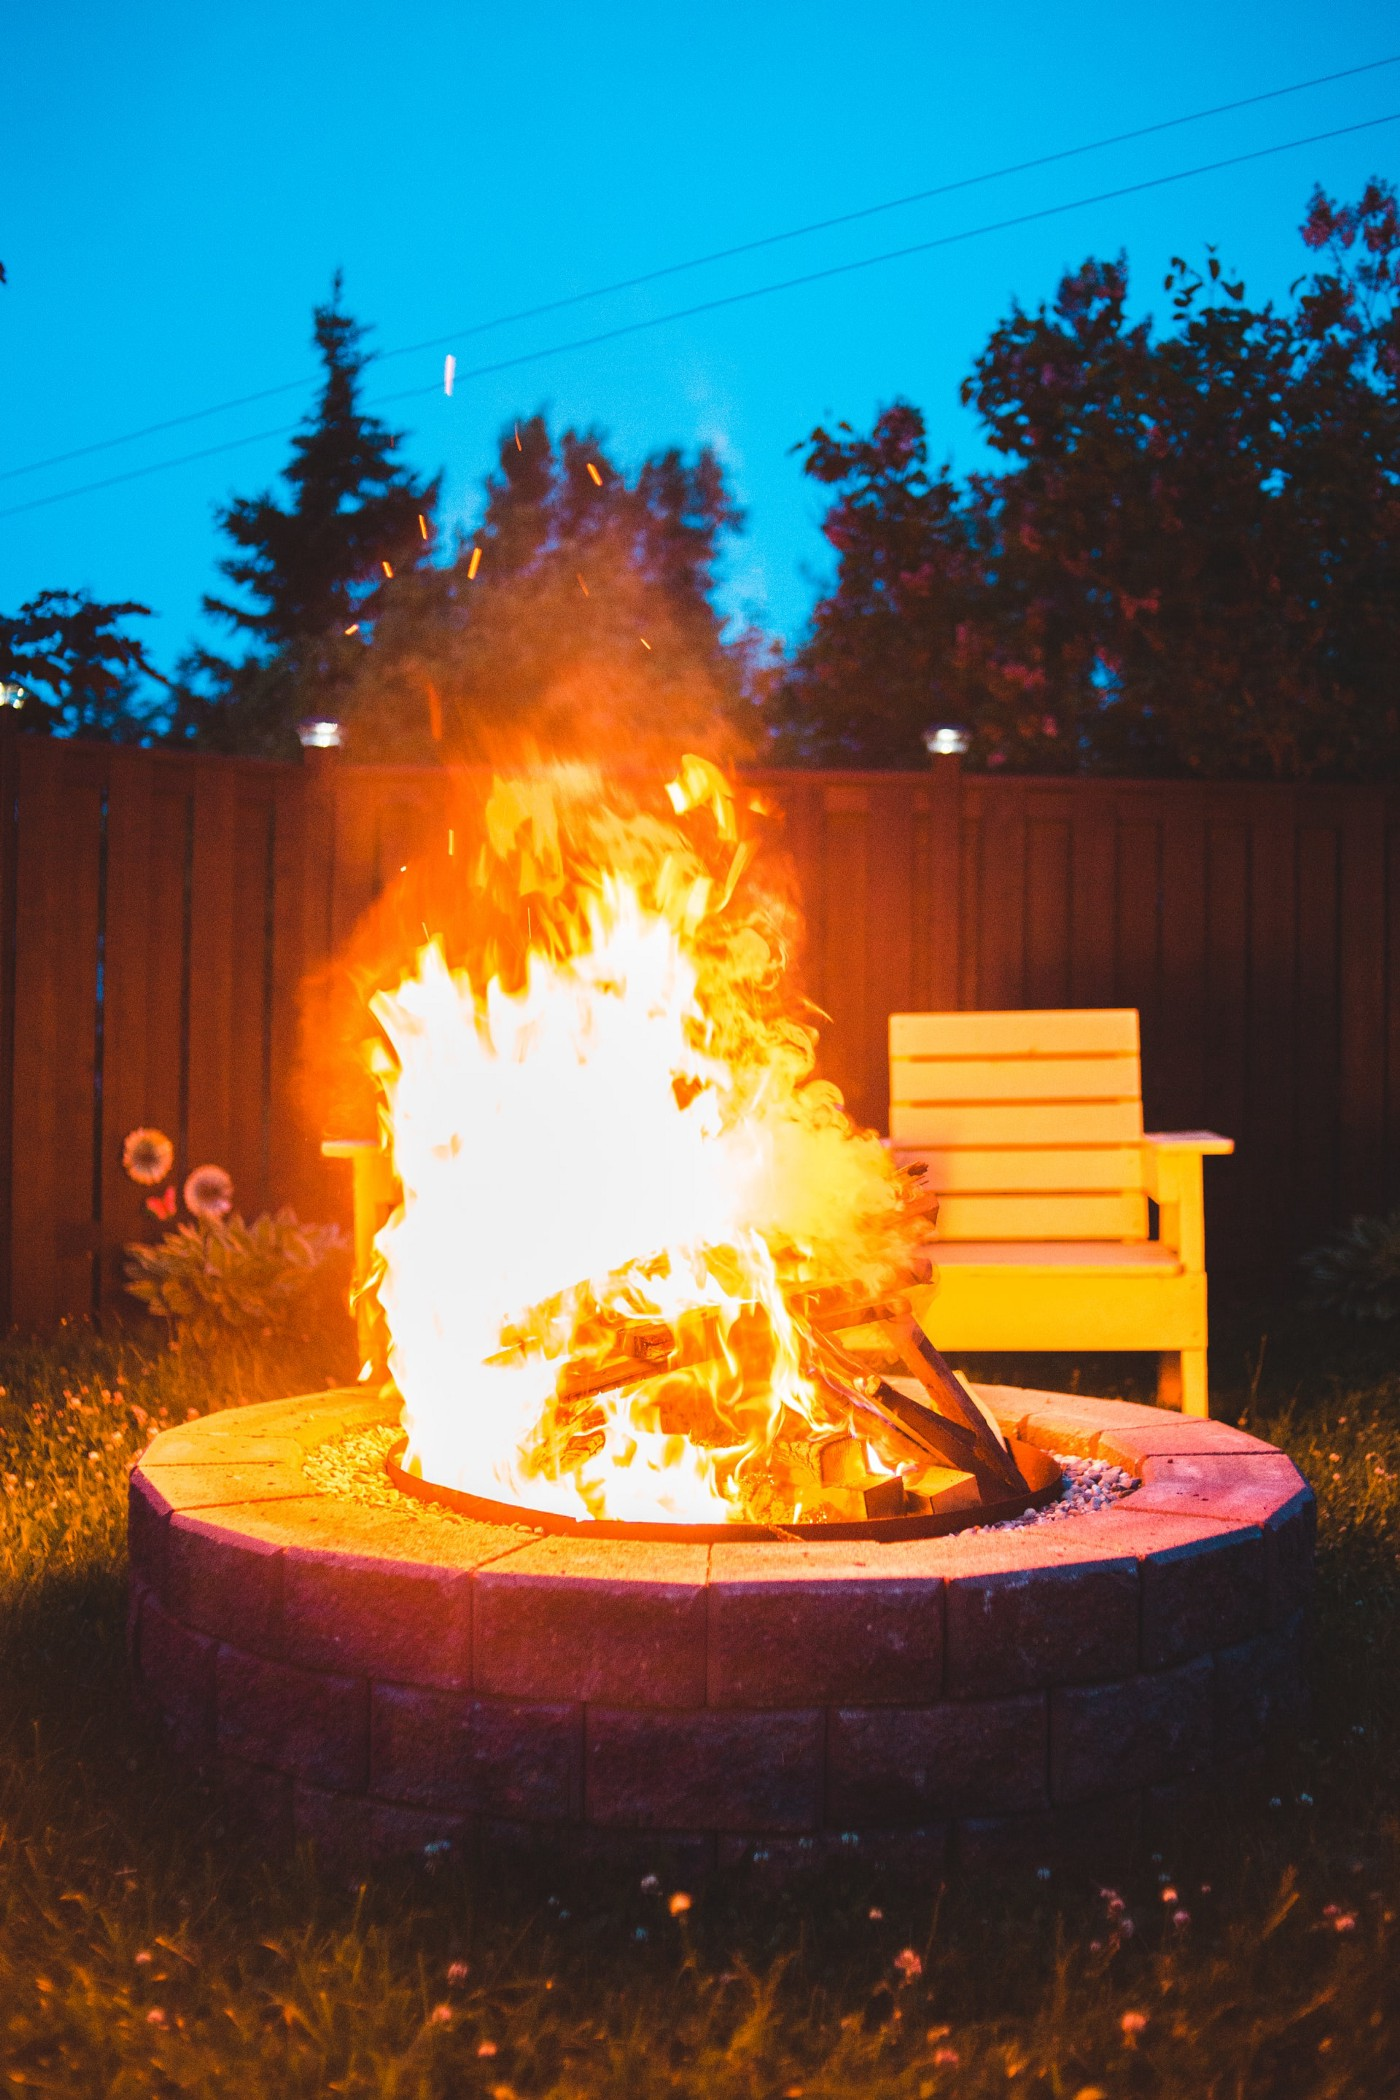 A picture of a bon-fire